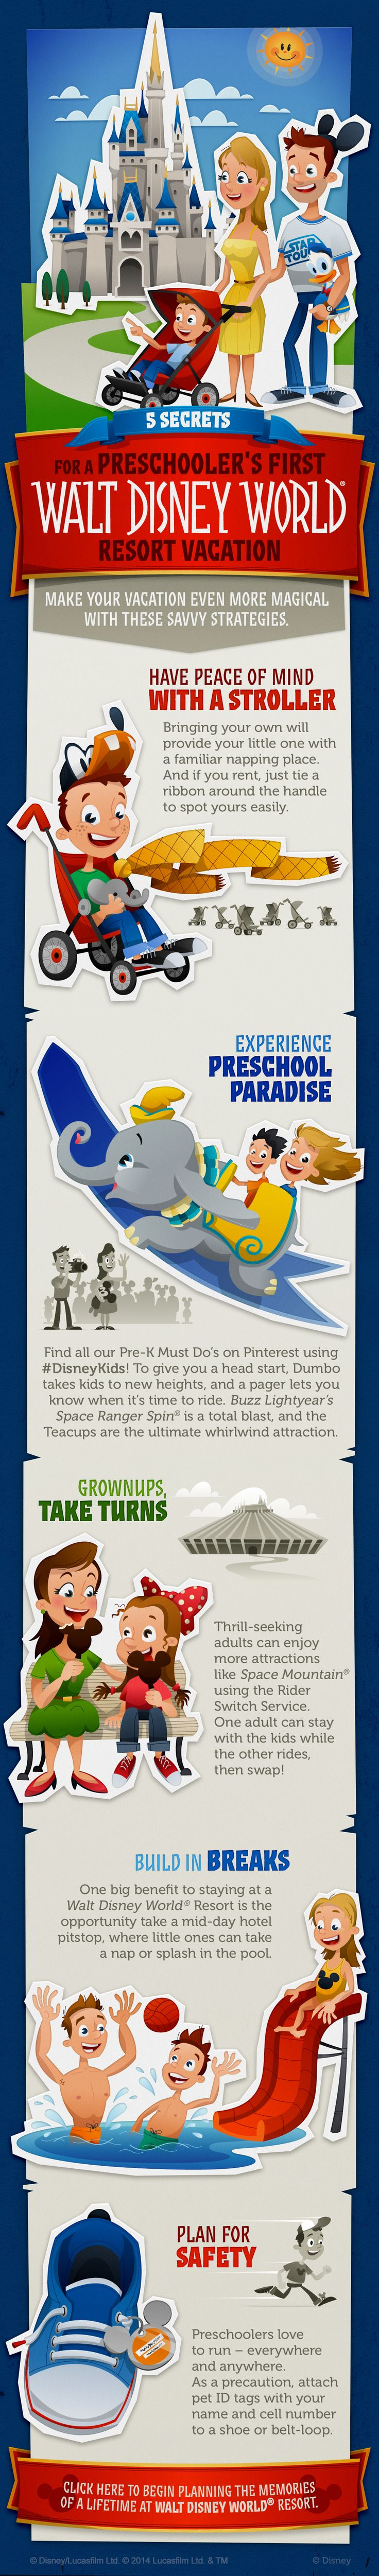 5 Secrets for a Preschooler's First Walt Disney World Resort Vacation! http://www.pinterest.com/search?q=DisneyKids http://www.pinterest.com/explore/toddlers http://www.pinterest.com/explore/vacation http://www.pinterest.com/explore/tips http://www.pinterest.com/search?q=tricks